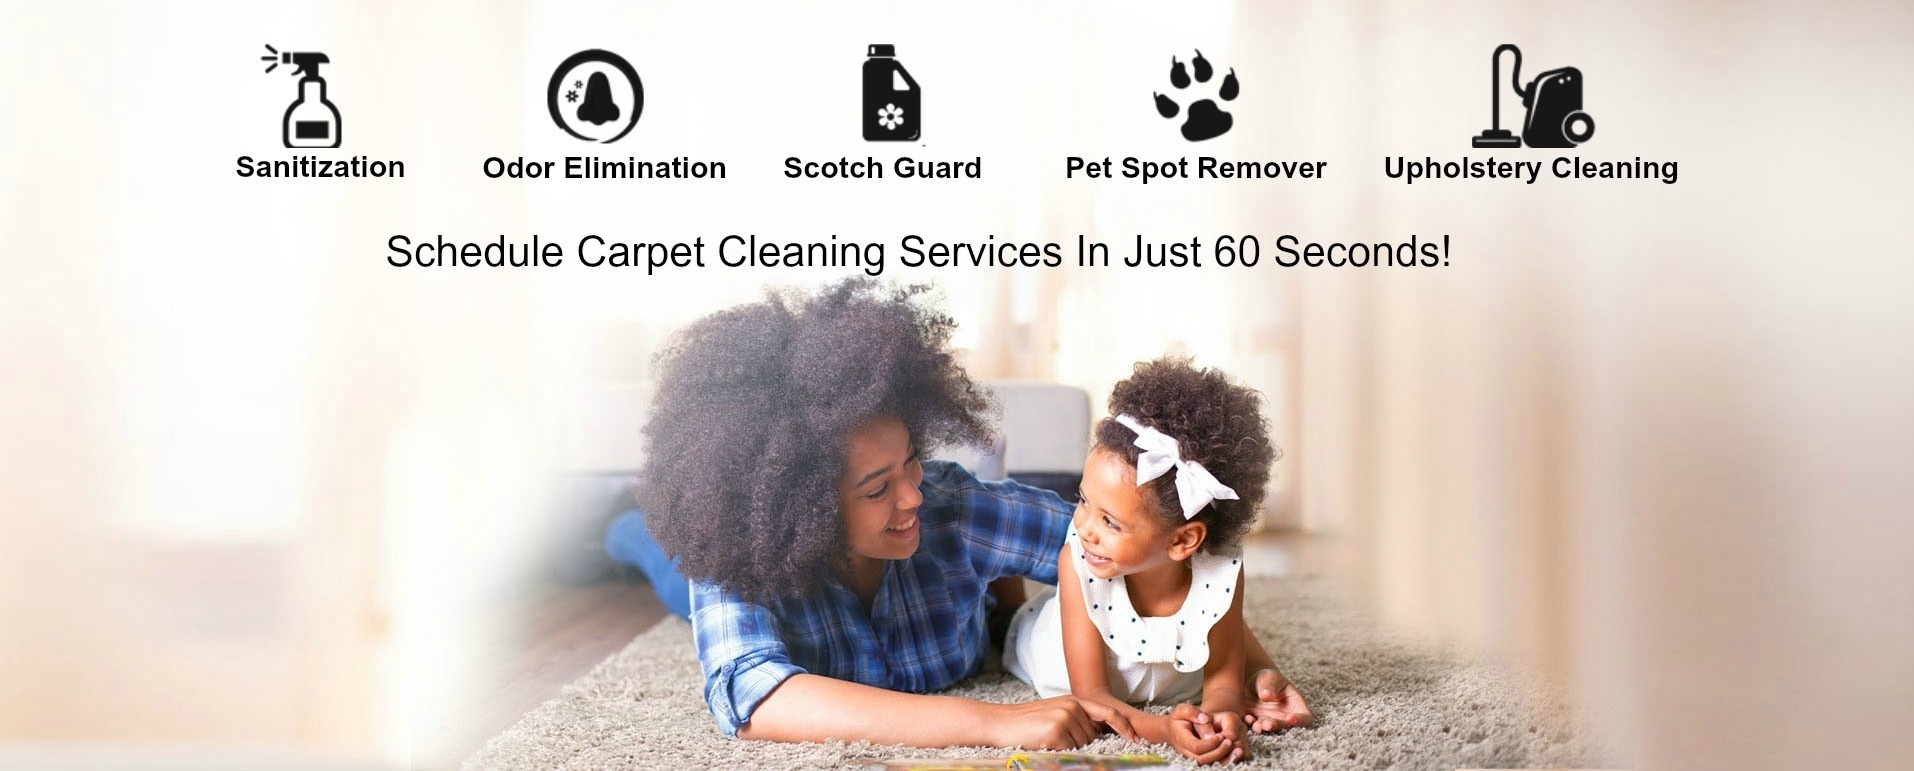 Carpet Cleaning Toronto Deals Carpet Vidalondon